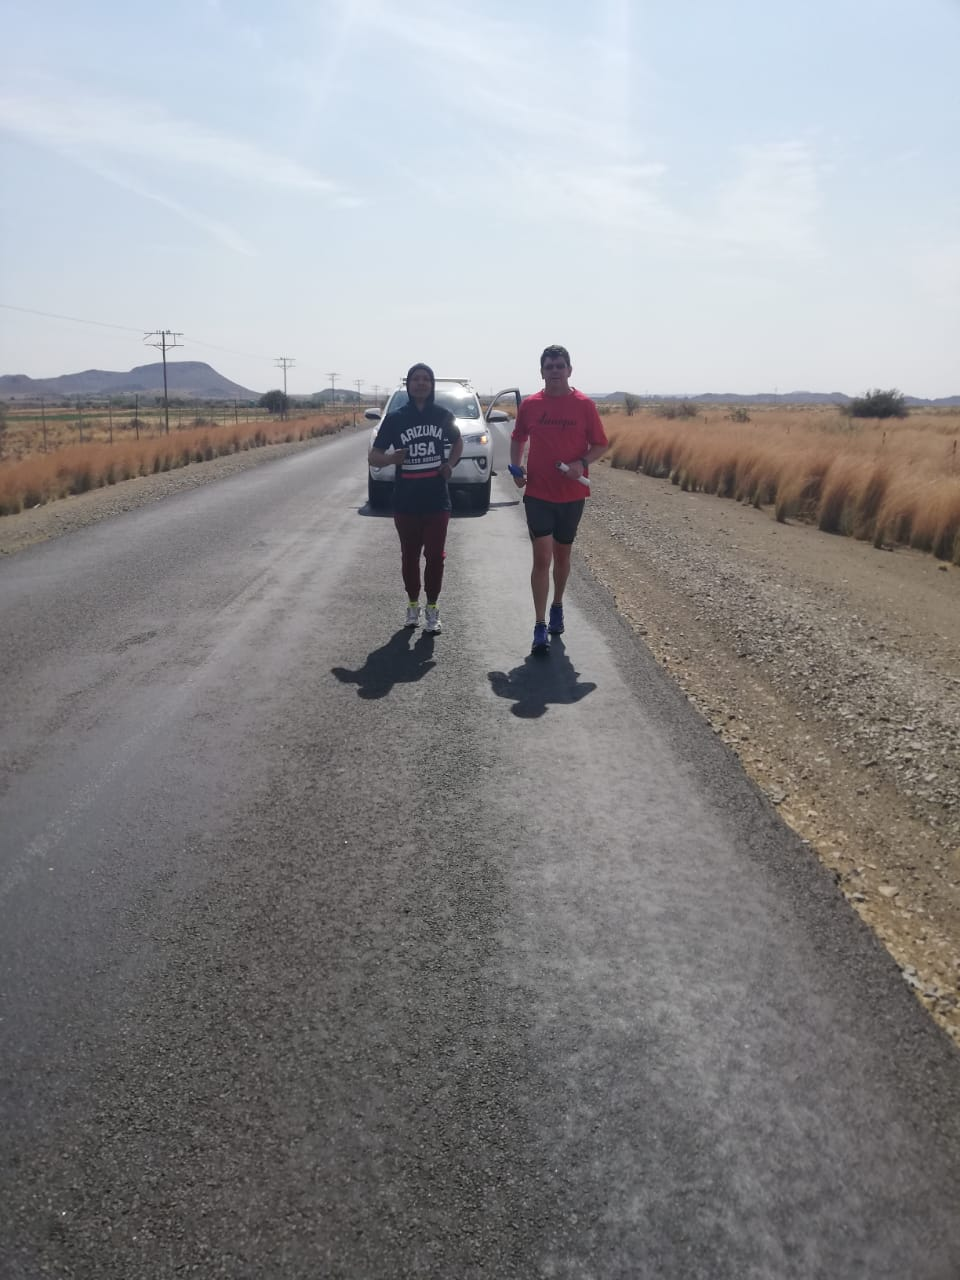 #UFSRun4MentalHealth runners on the road